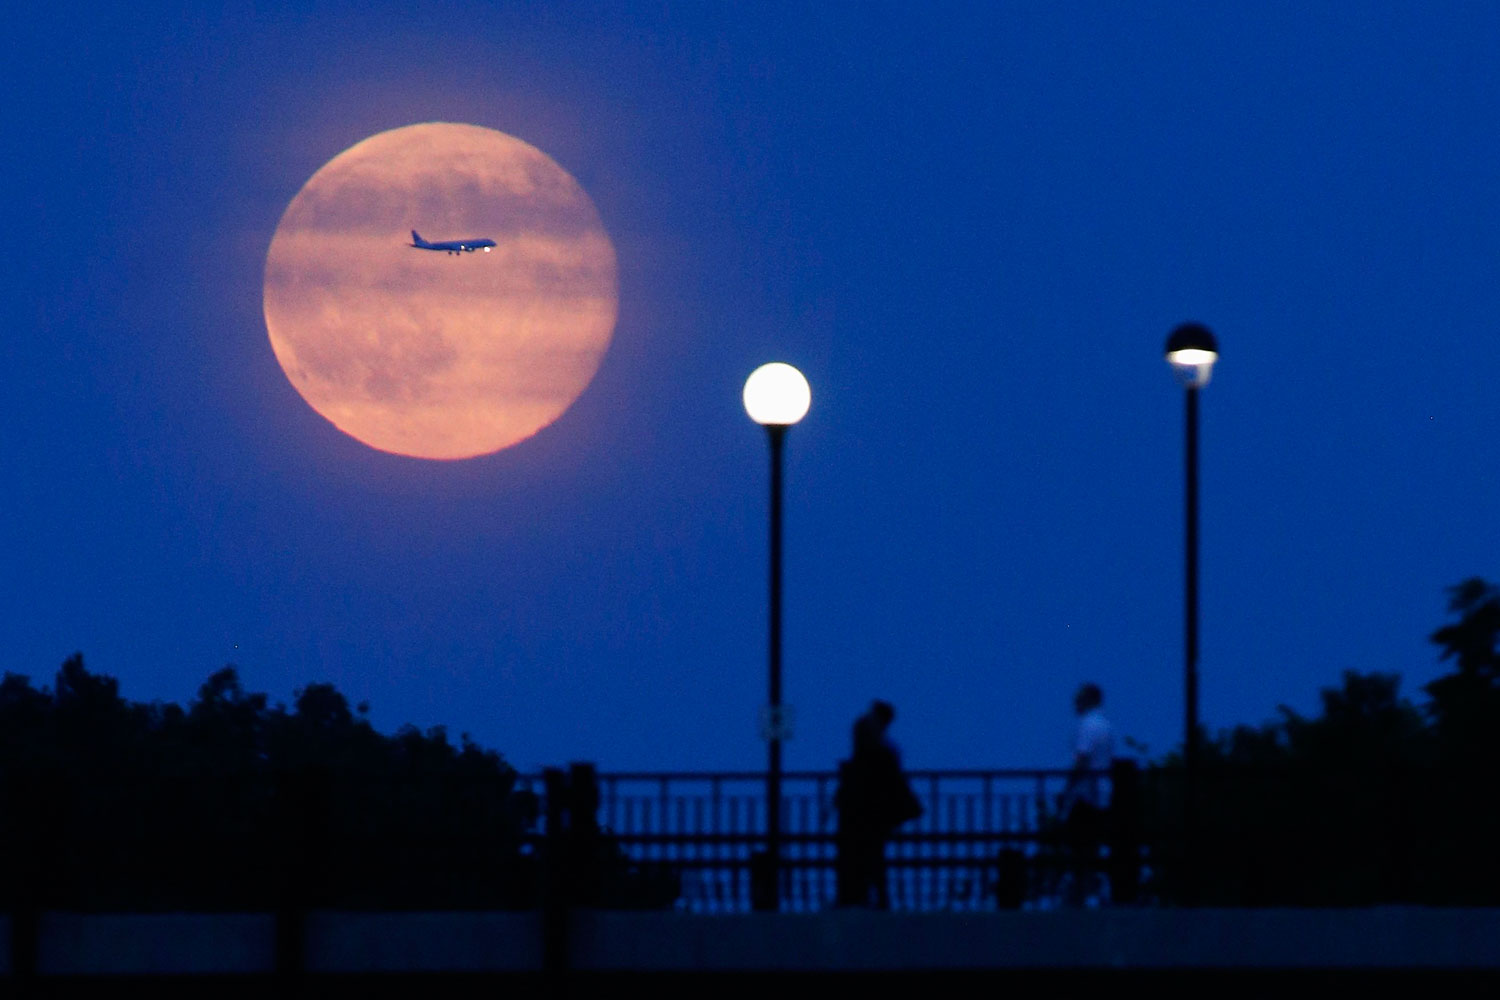 Aircraft passes in front of a Supermoon rising over the Rideau Canal in Ottawa July 12, 2014.